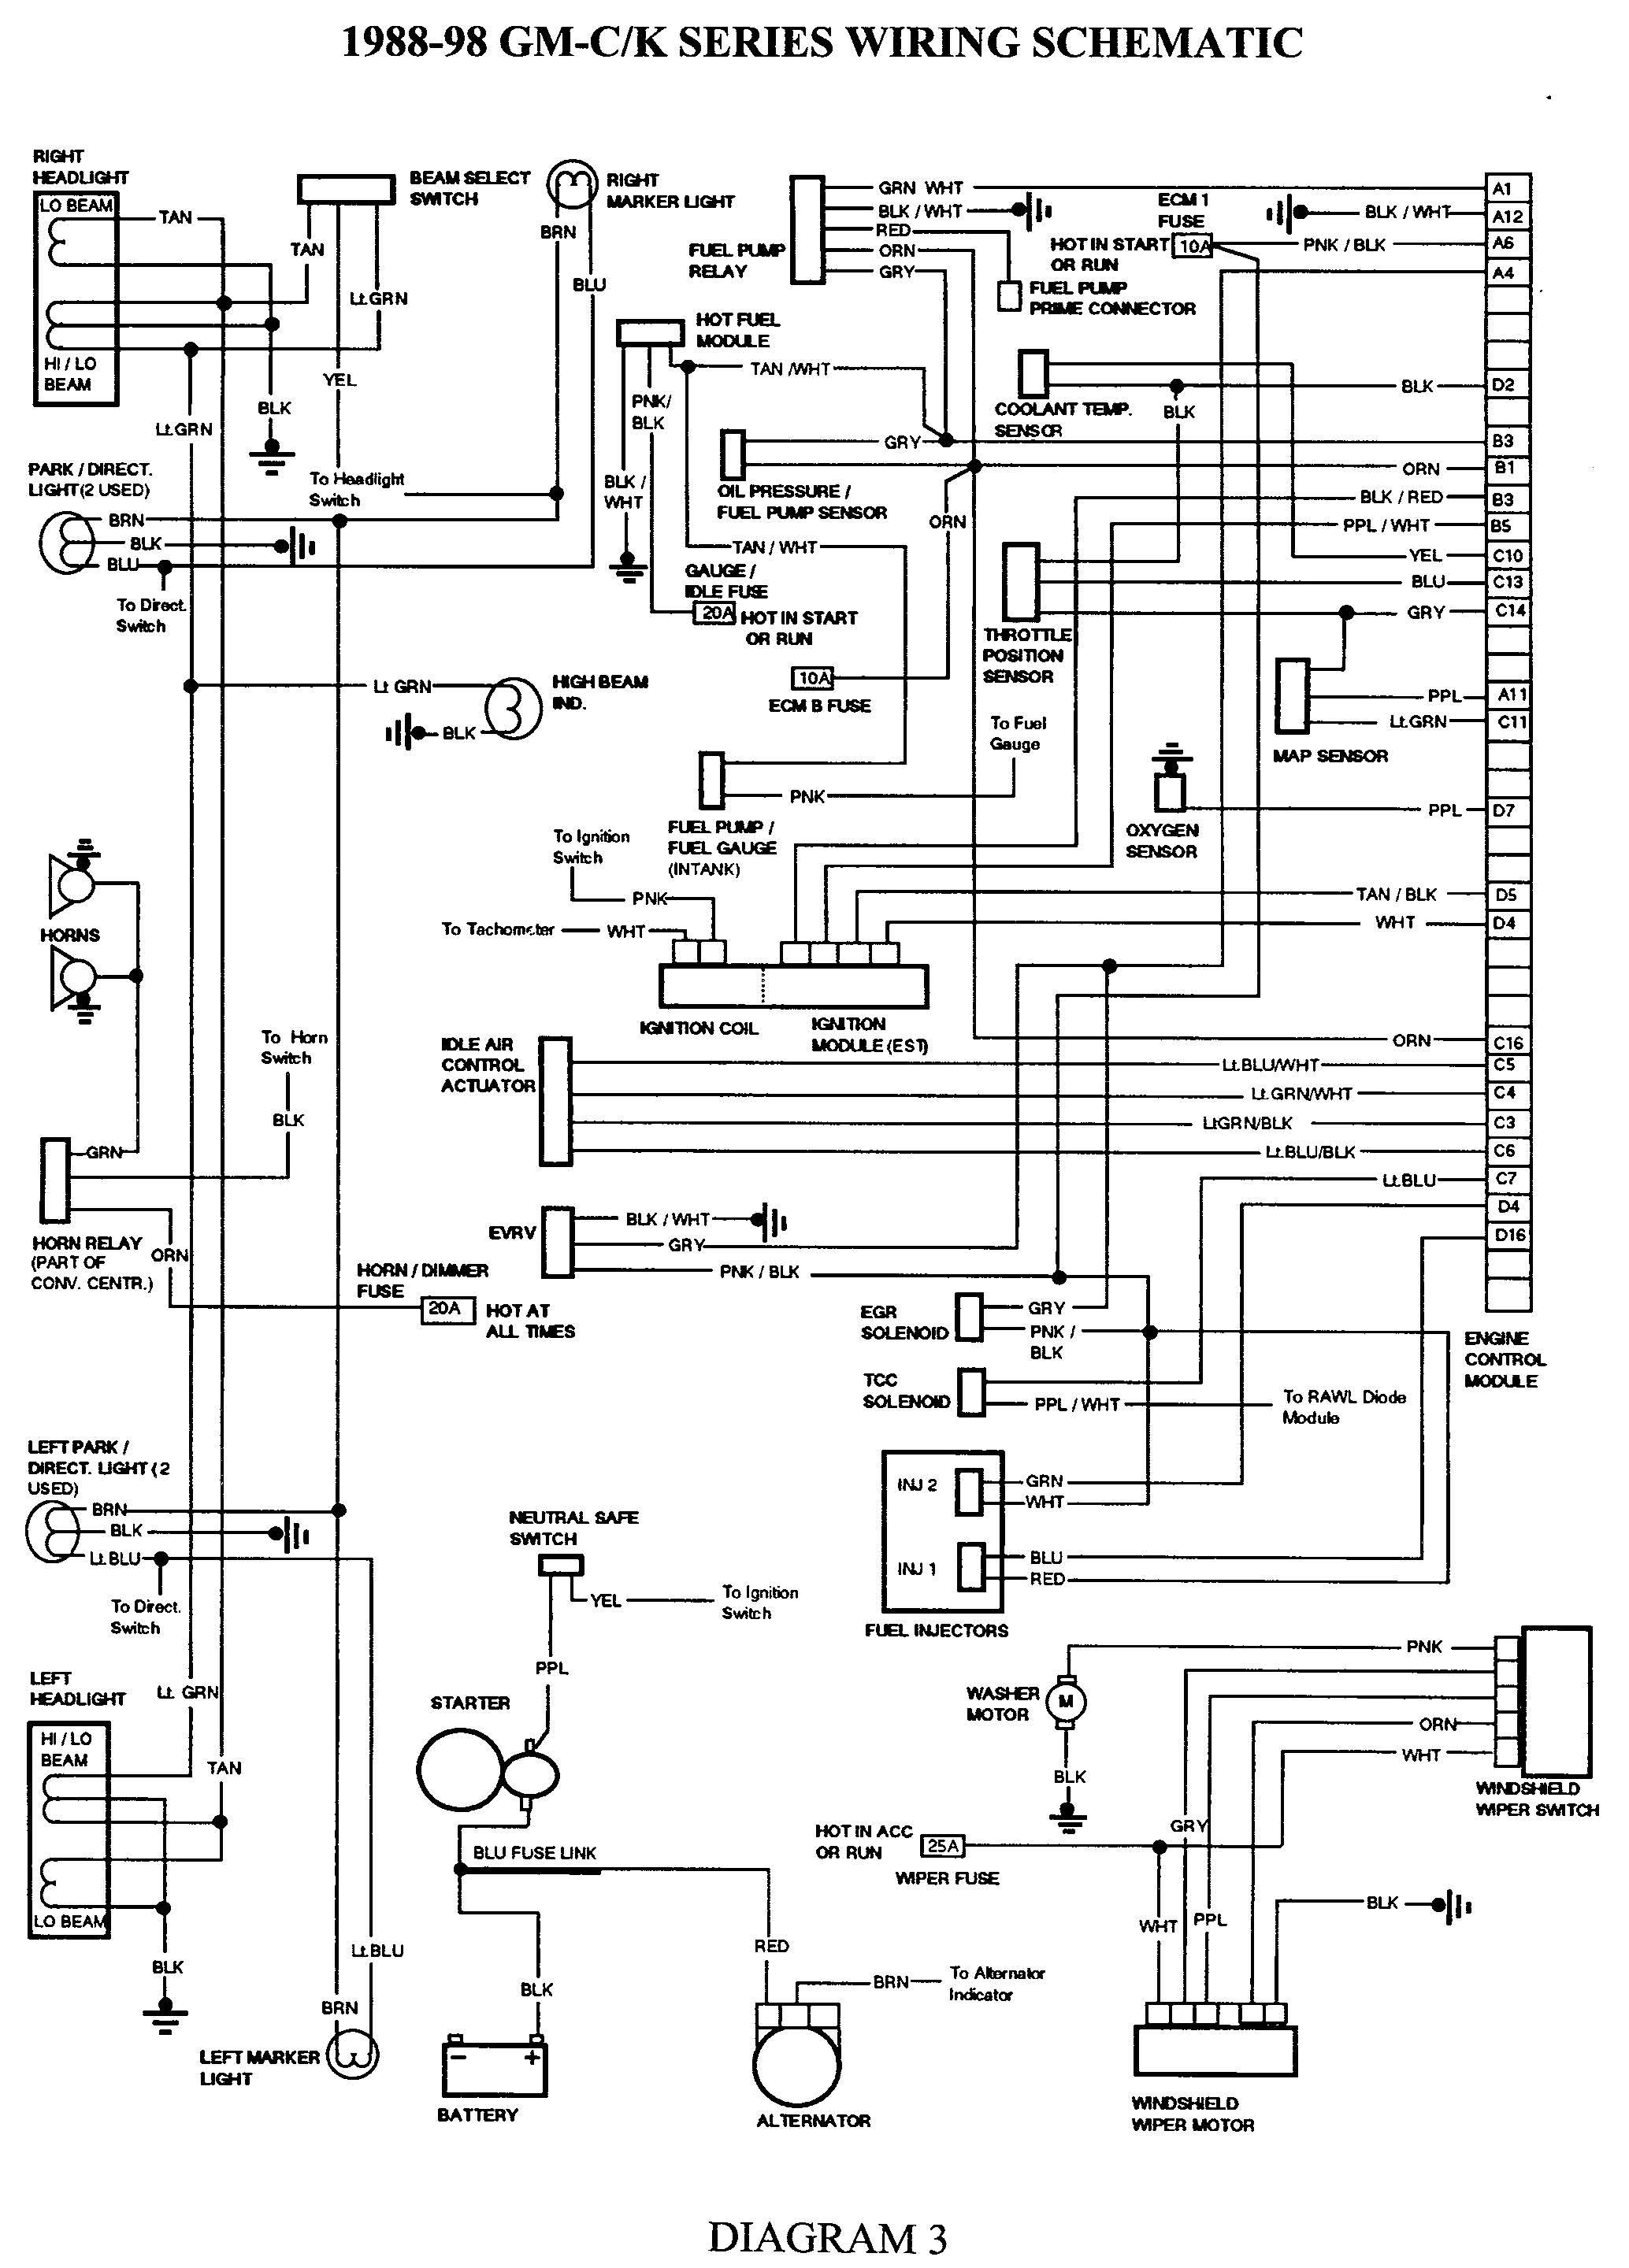 1991 Chevy S10 Fuse Box Diagram Gota Wiring Diagram